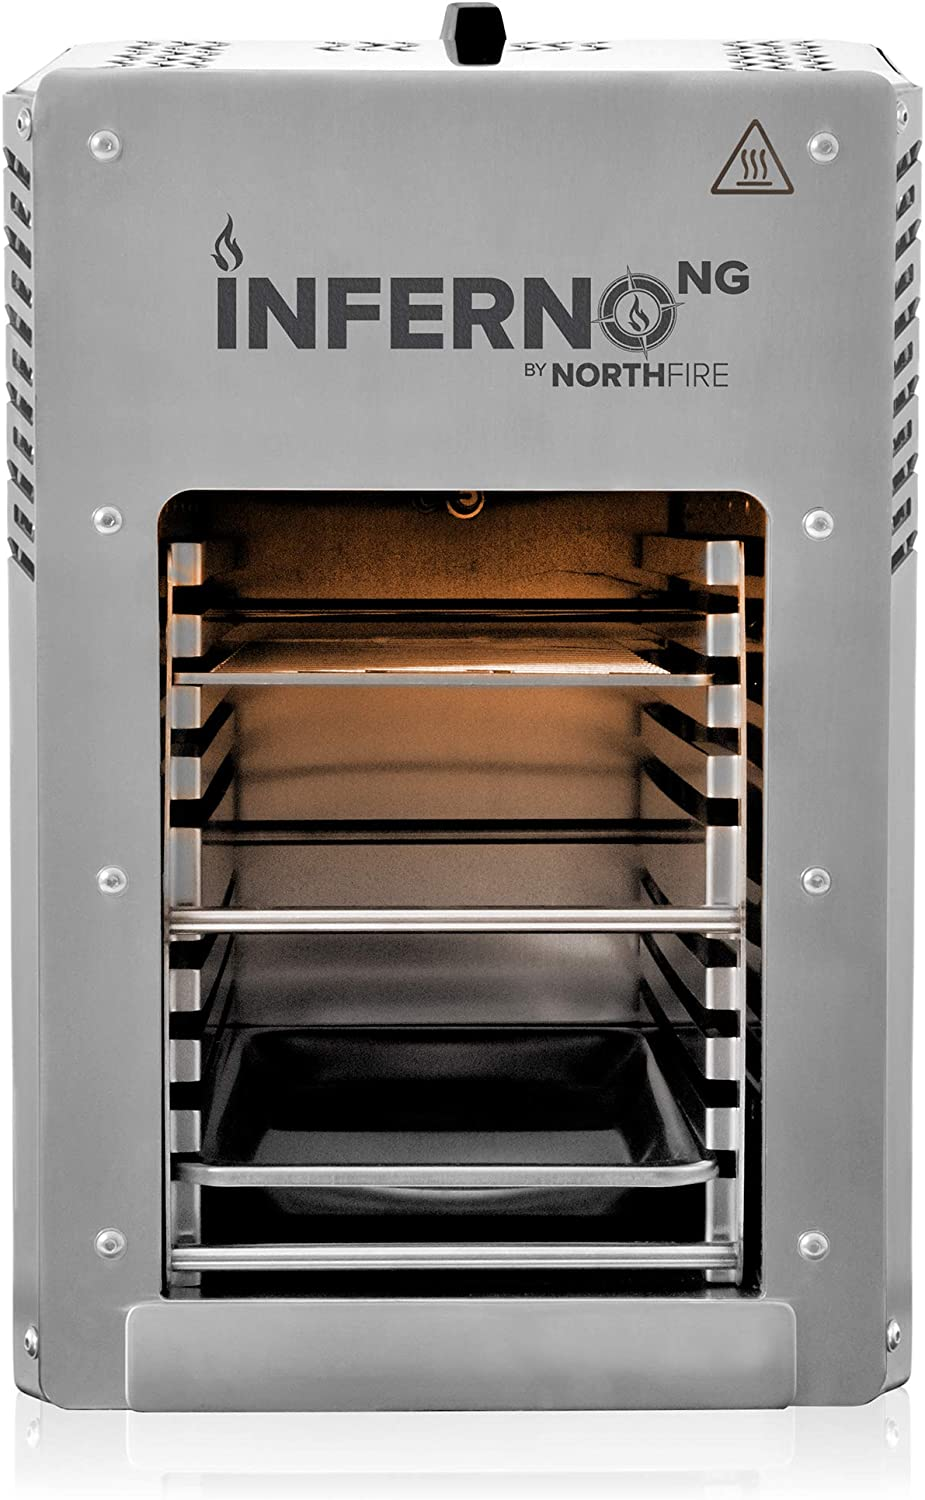 Northfire INFERNONG Inferno Natural Gas, Silver